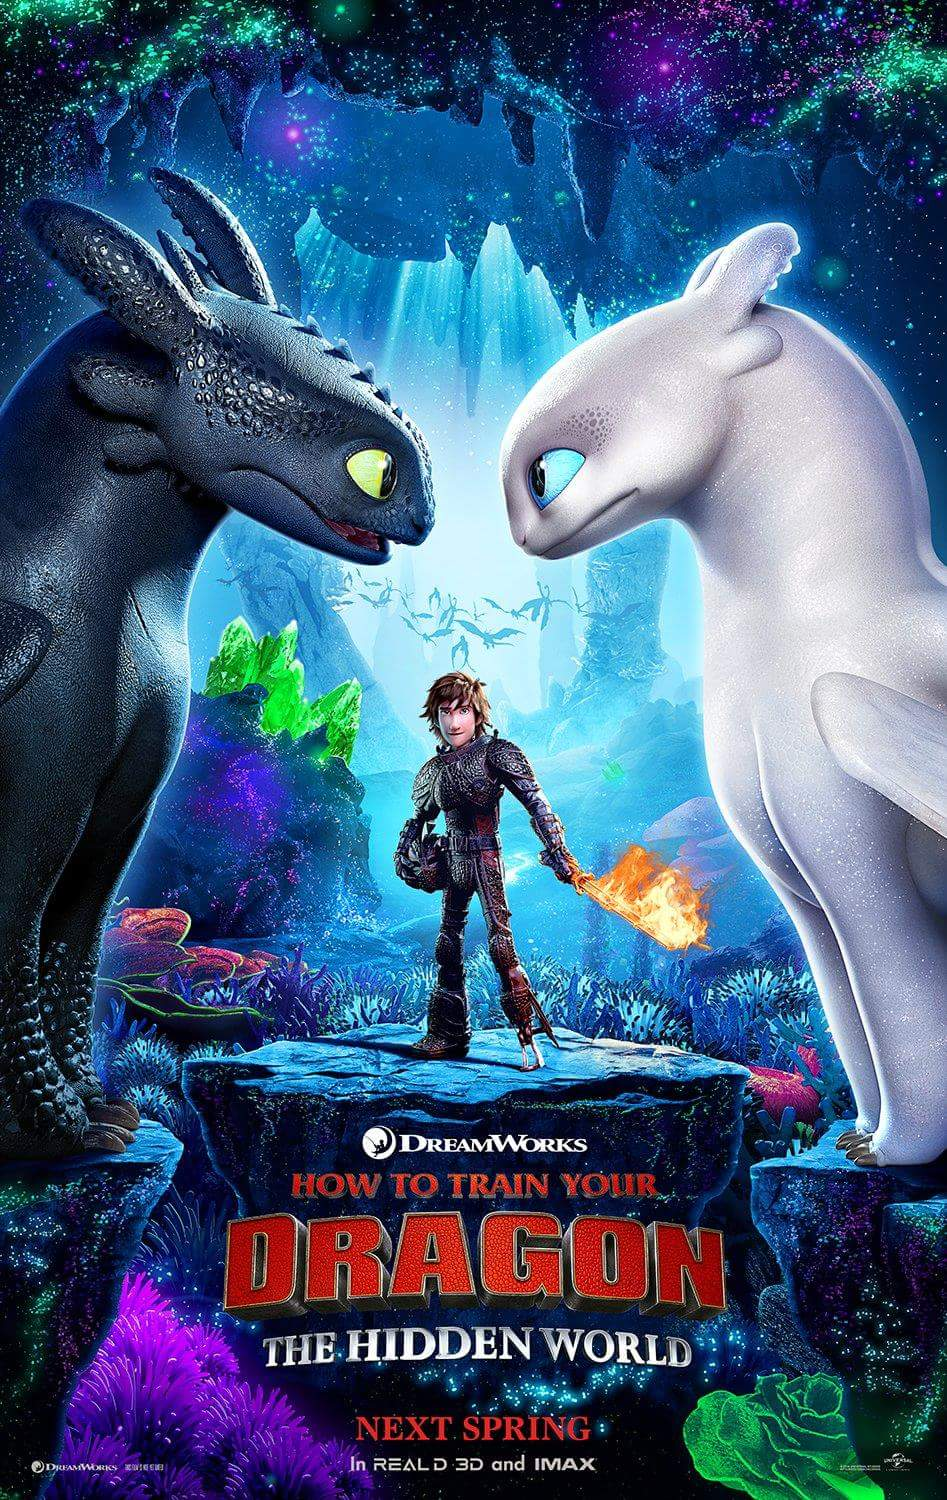 Dragons 3 [Topic officiel, avec spoilers] DreamWorks (2019) - Page 19 Fb_img12